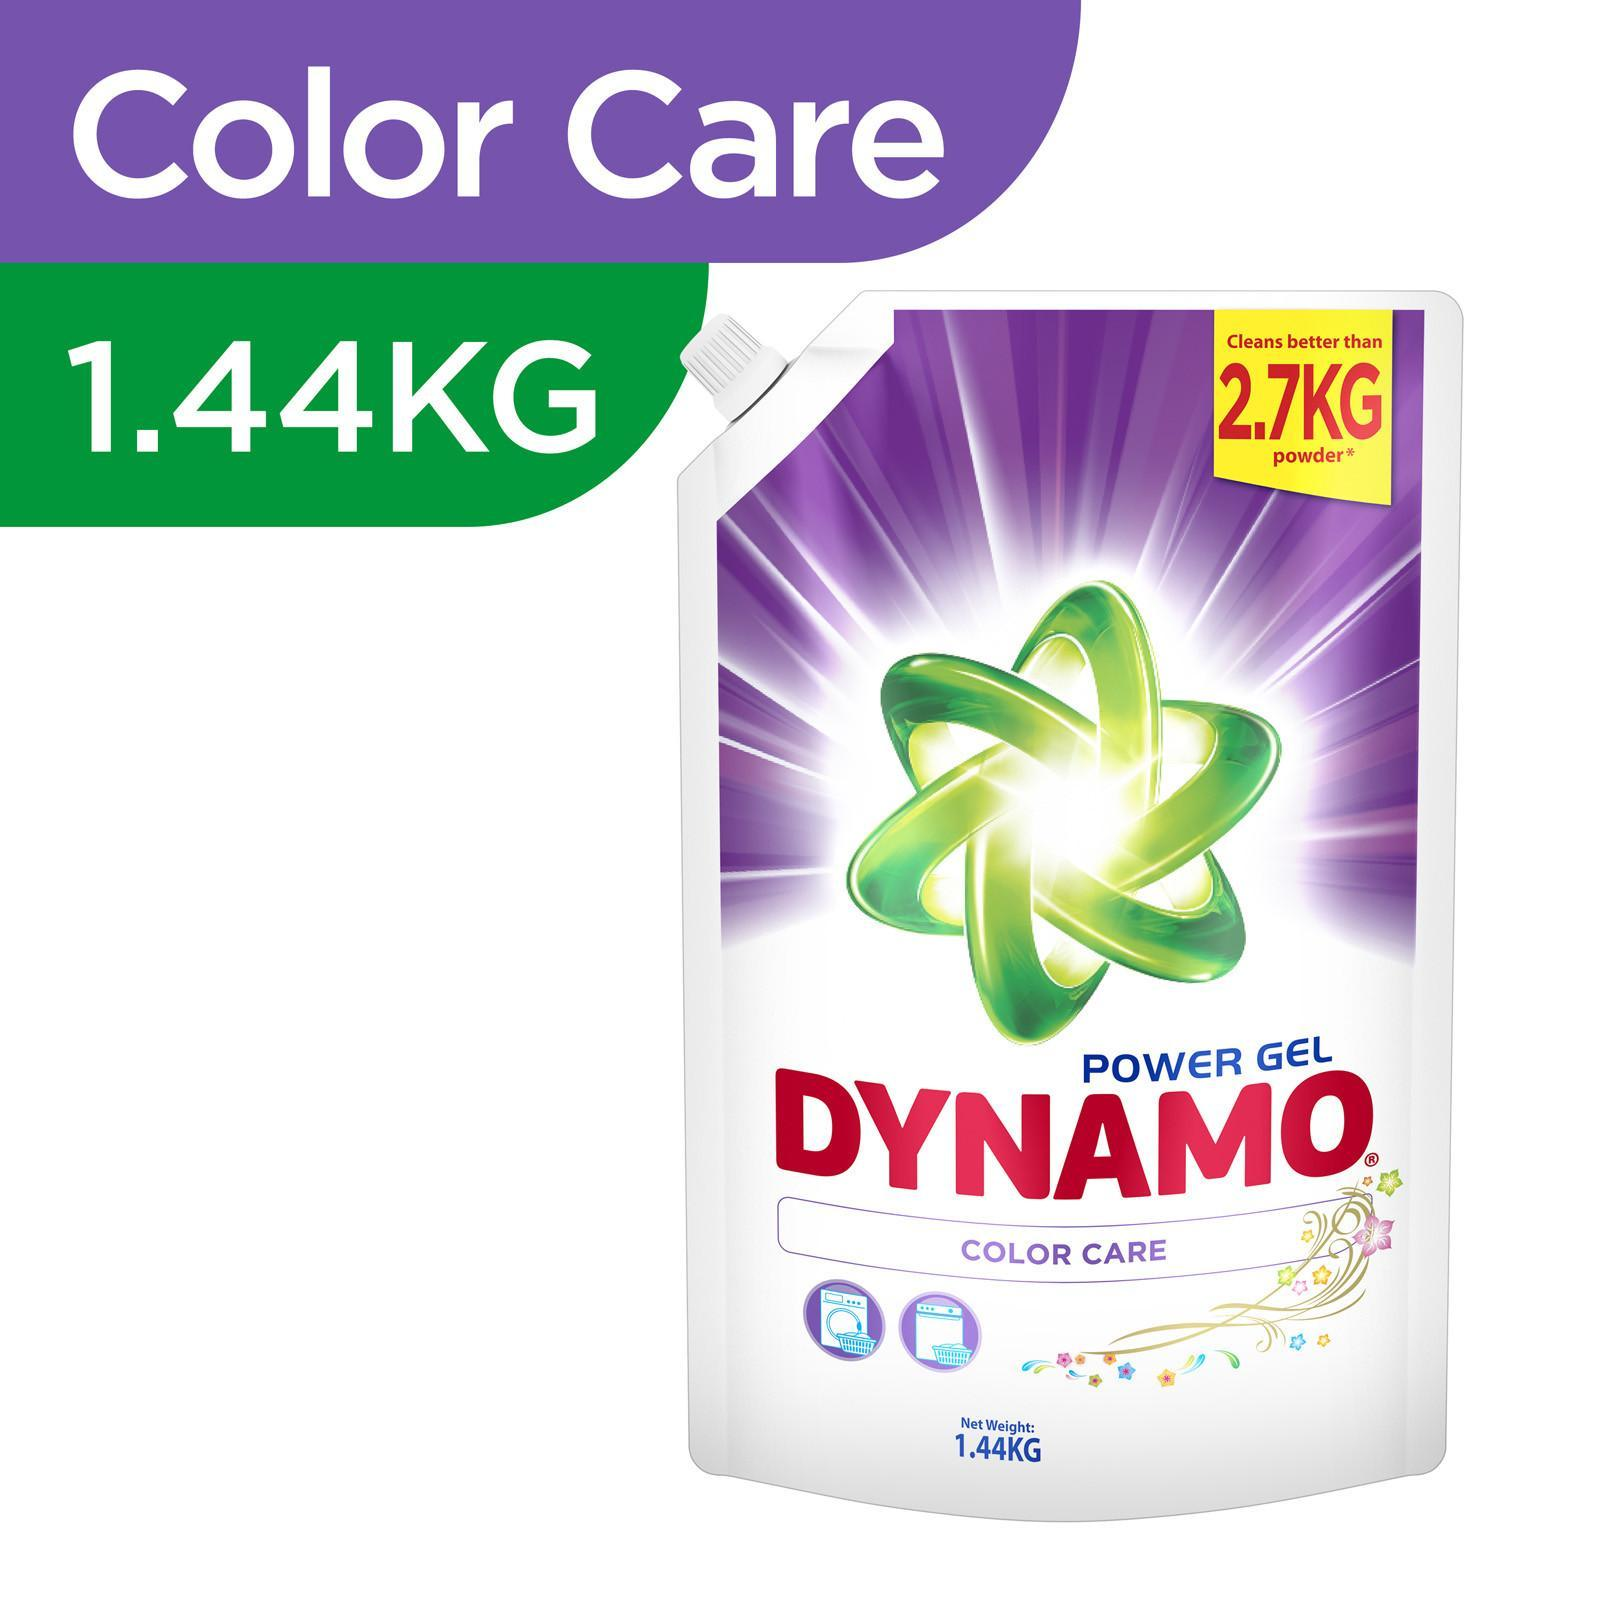 Dynamo Power Gel Color Care Laundry Detergent Refill